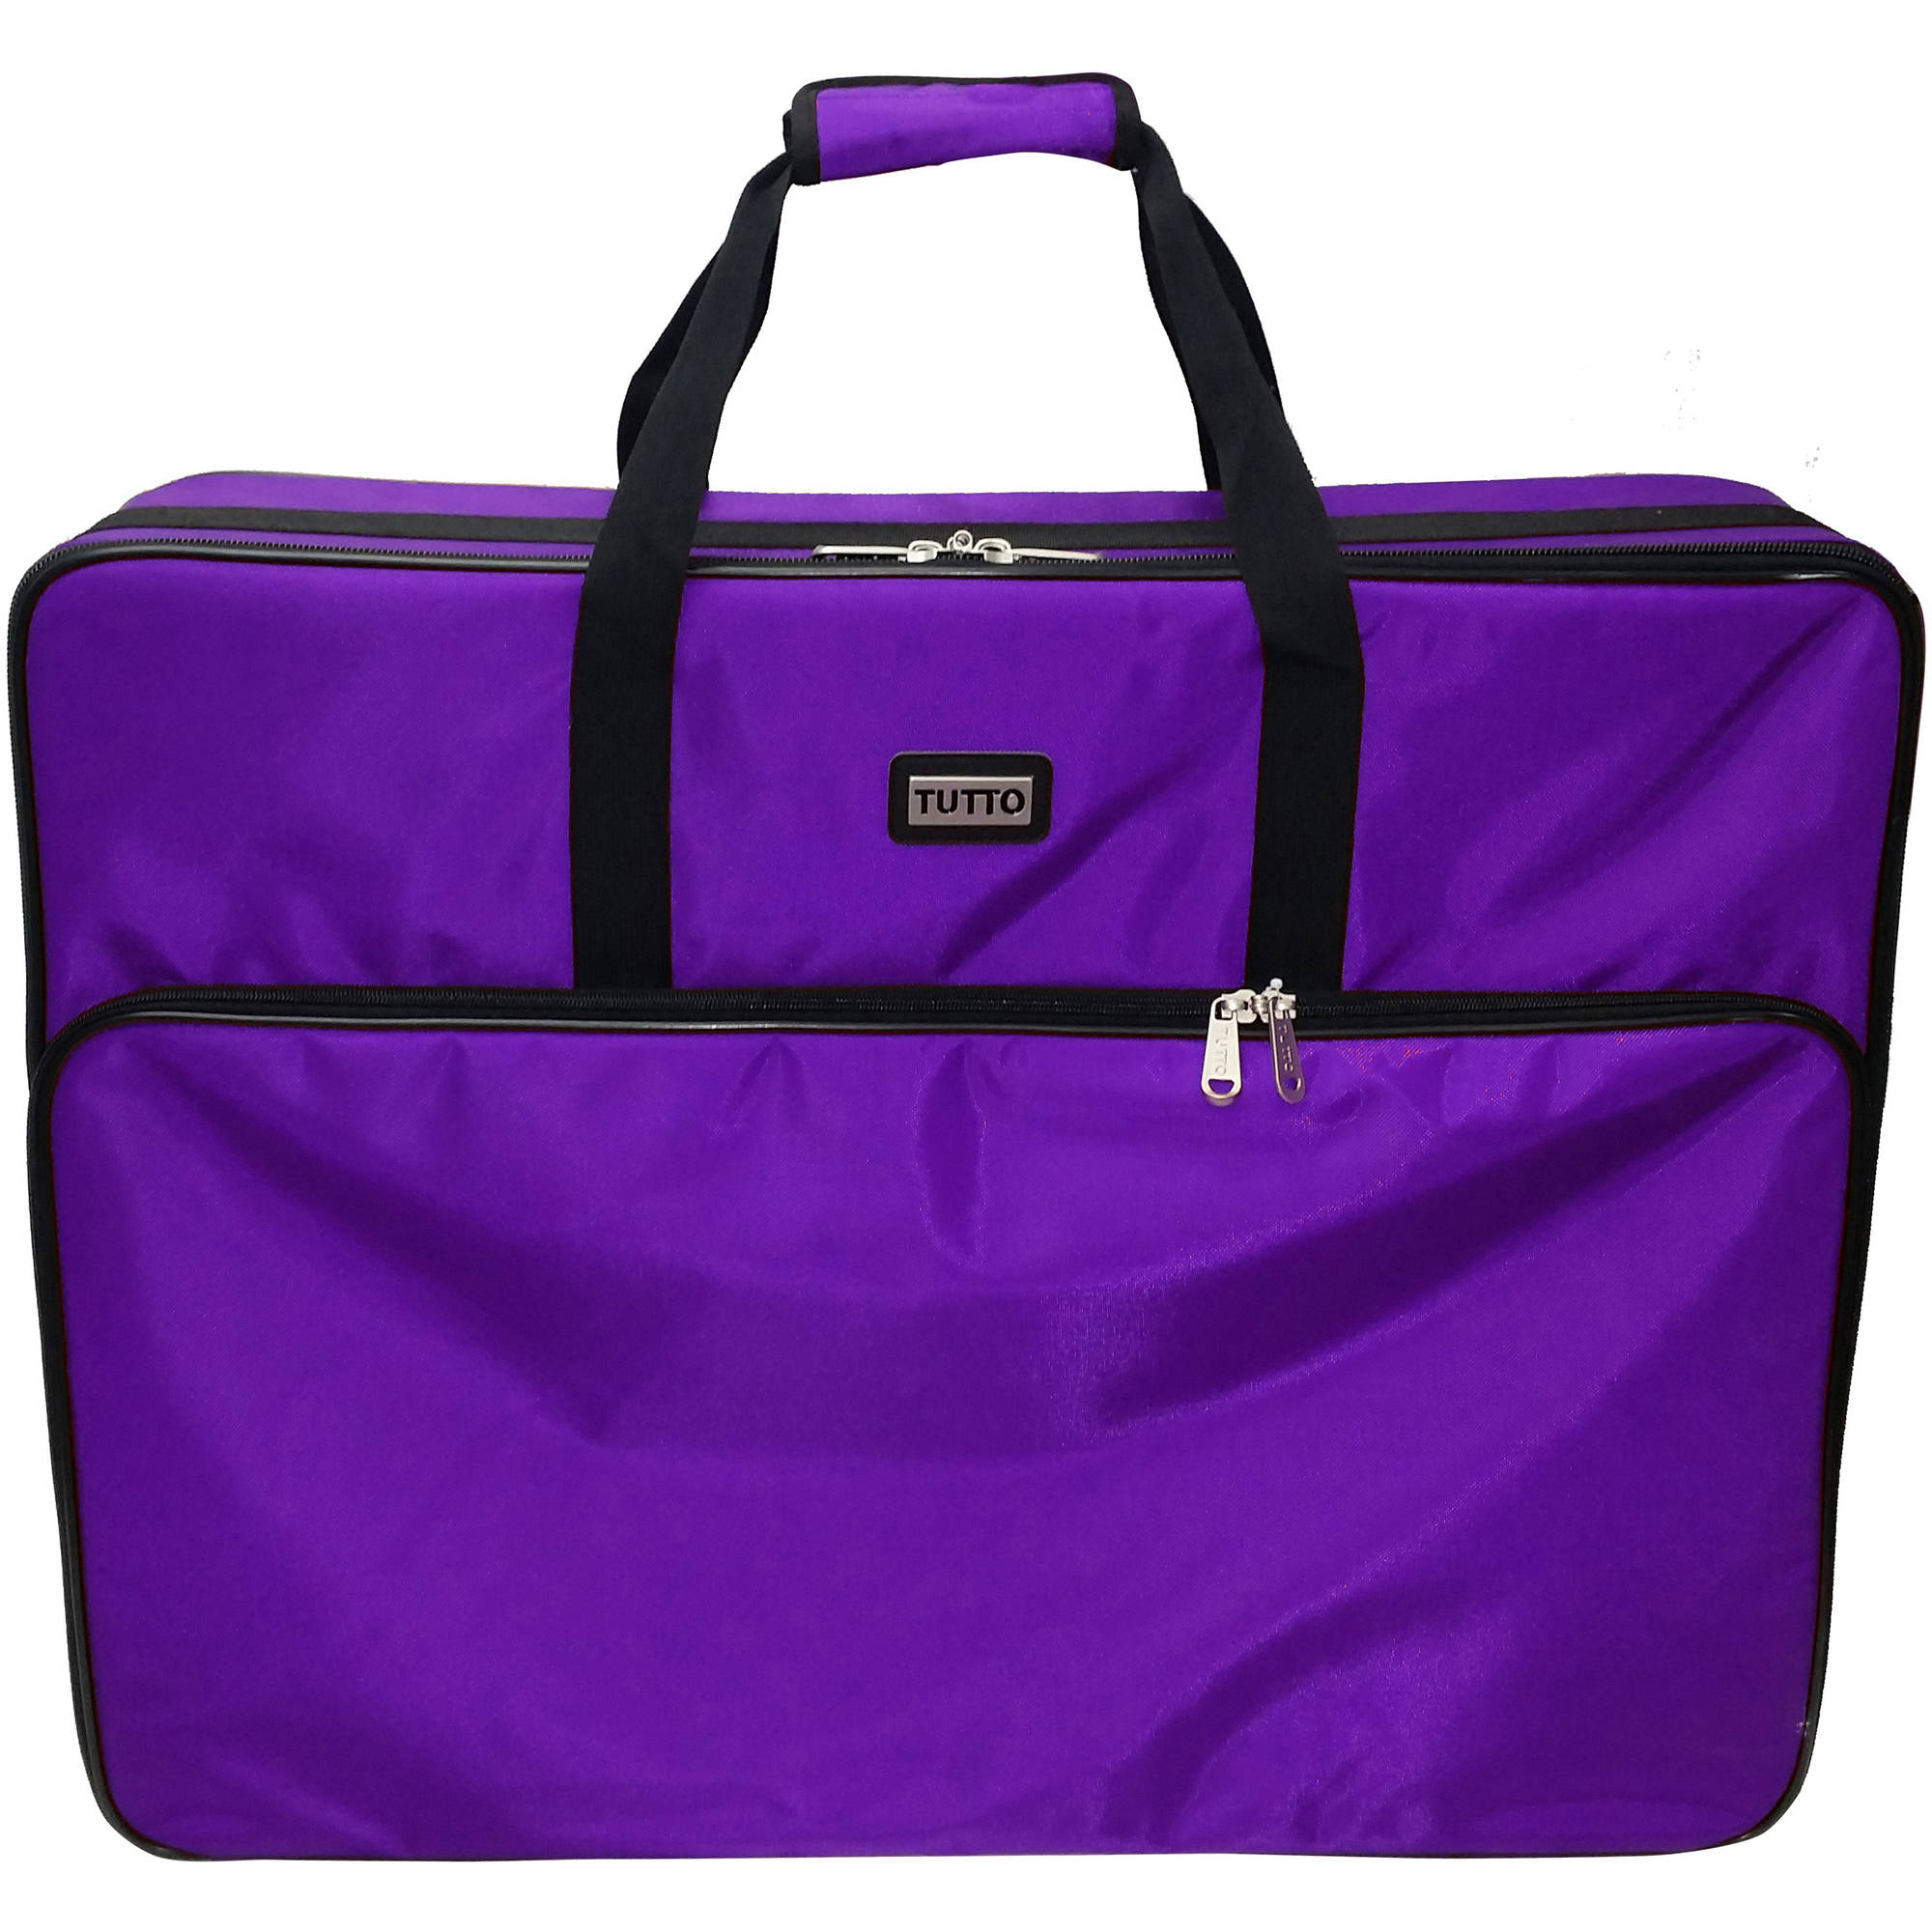 "TUTTO 26"" Embroidery Project Nylon Bag, Purple"